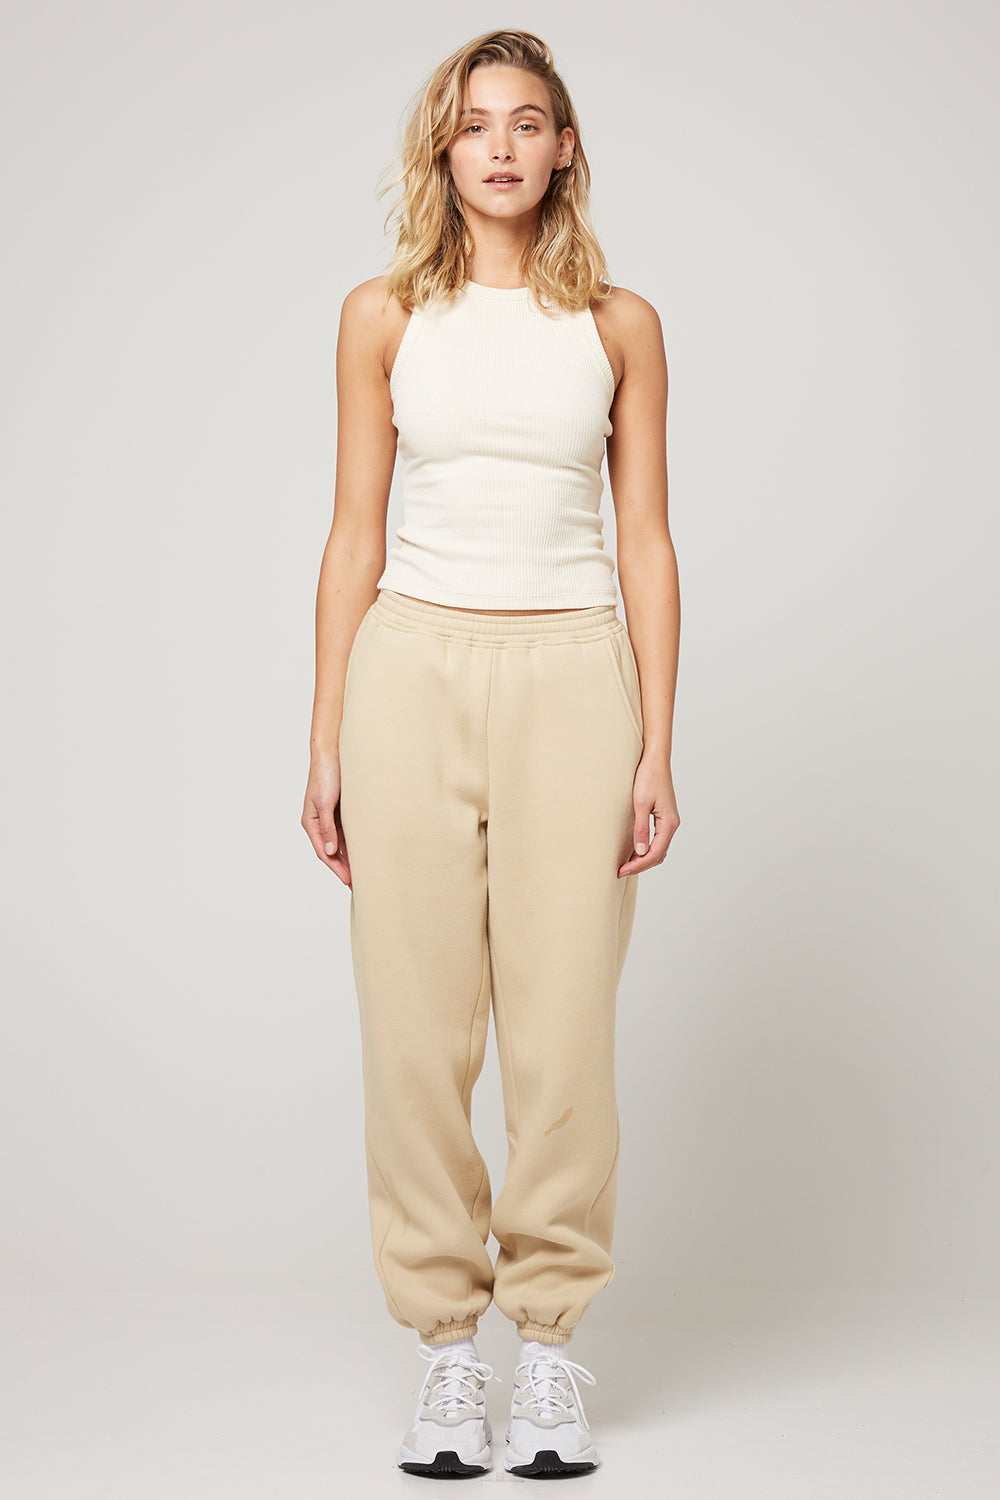 Atoir X RR / The Track Pant / Oatmeal